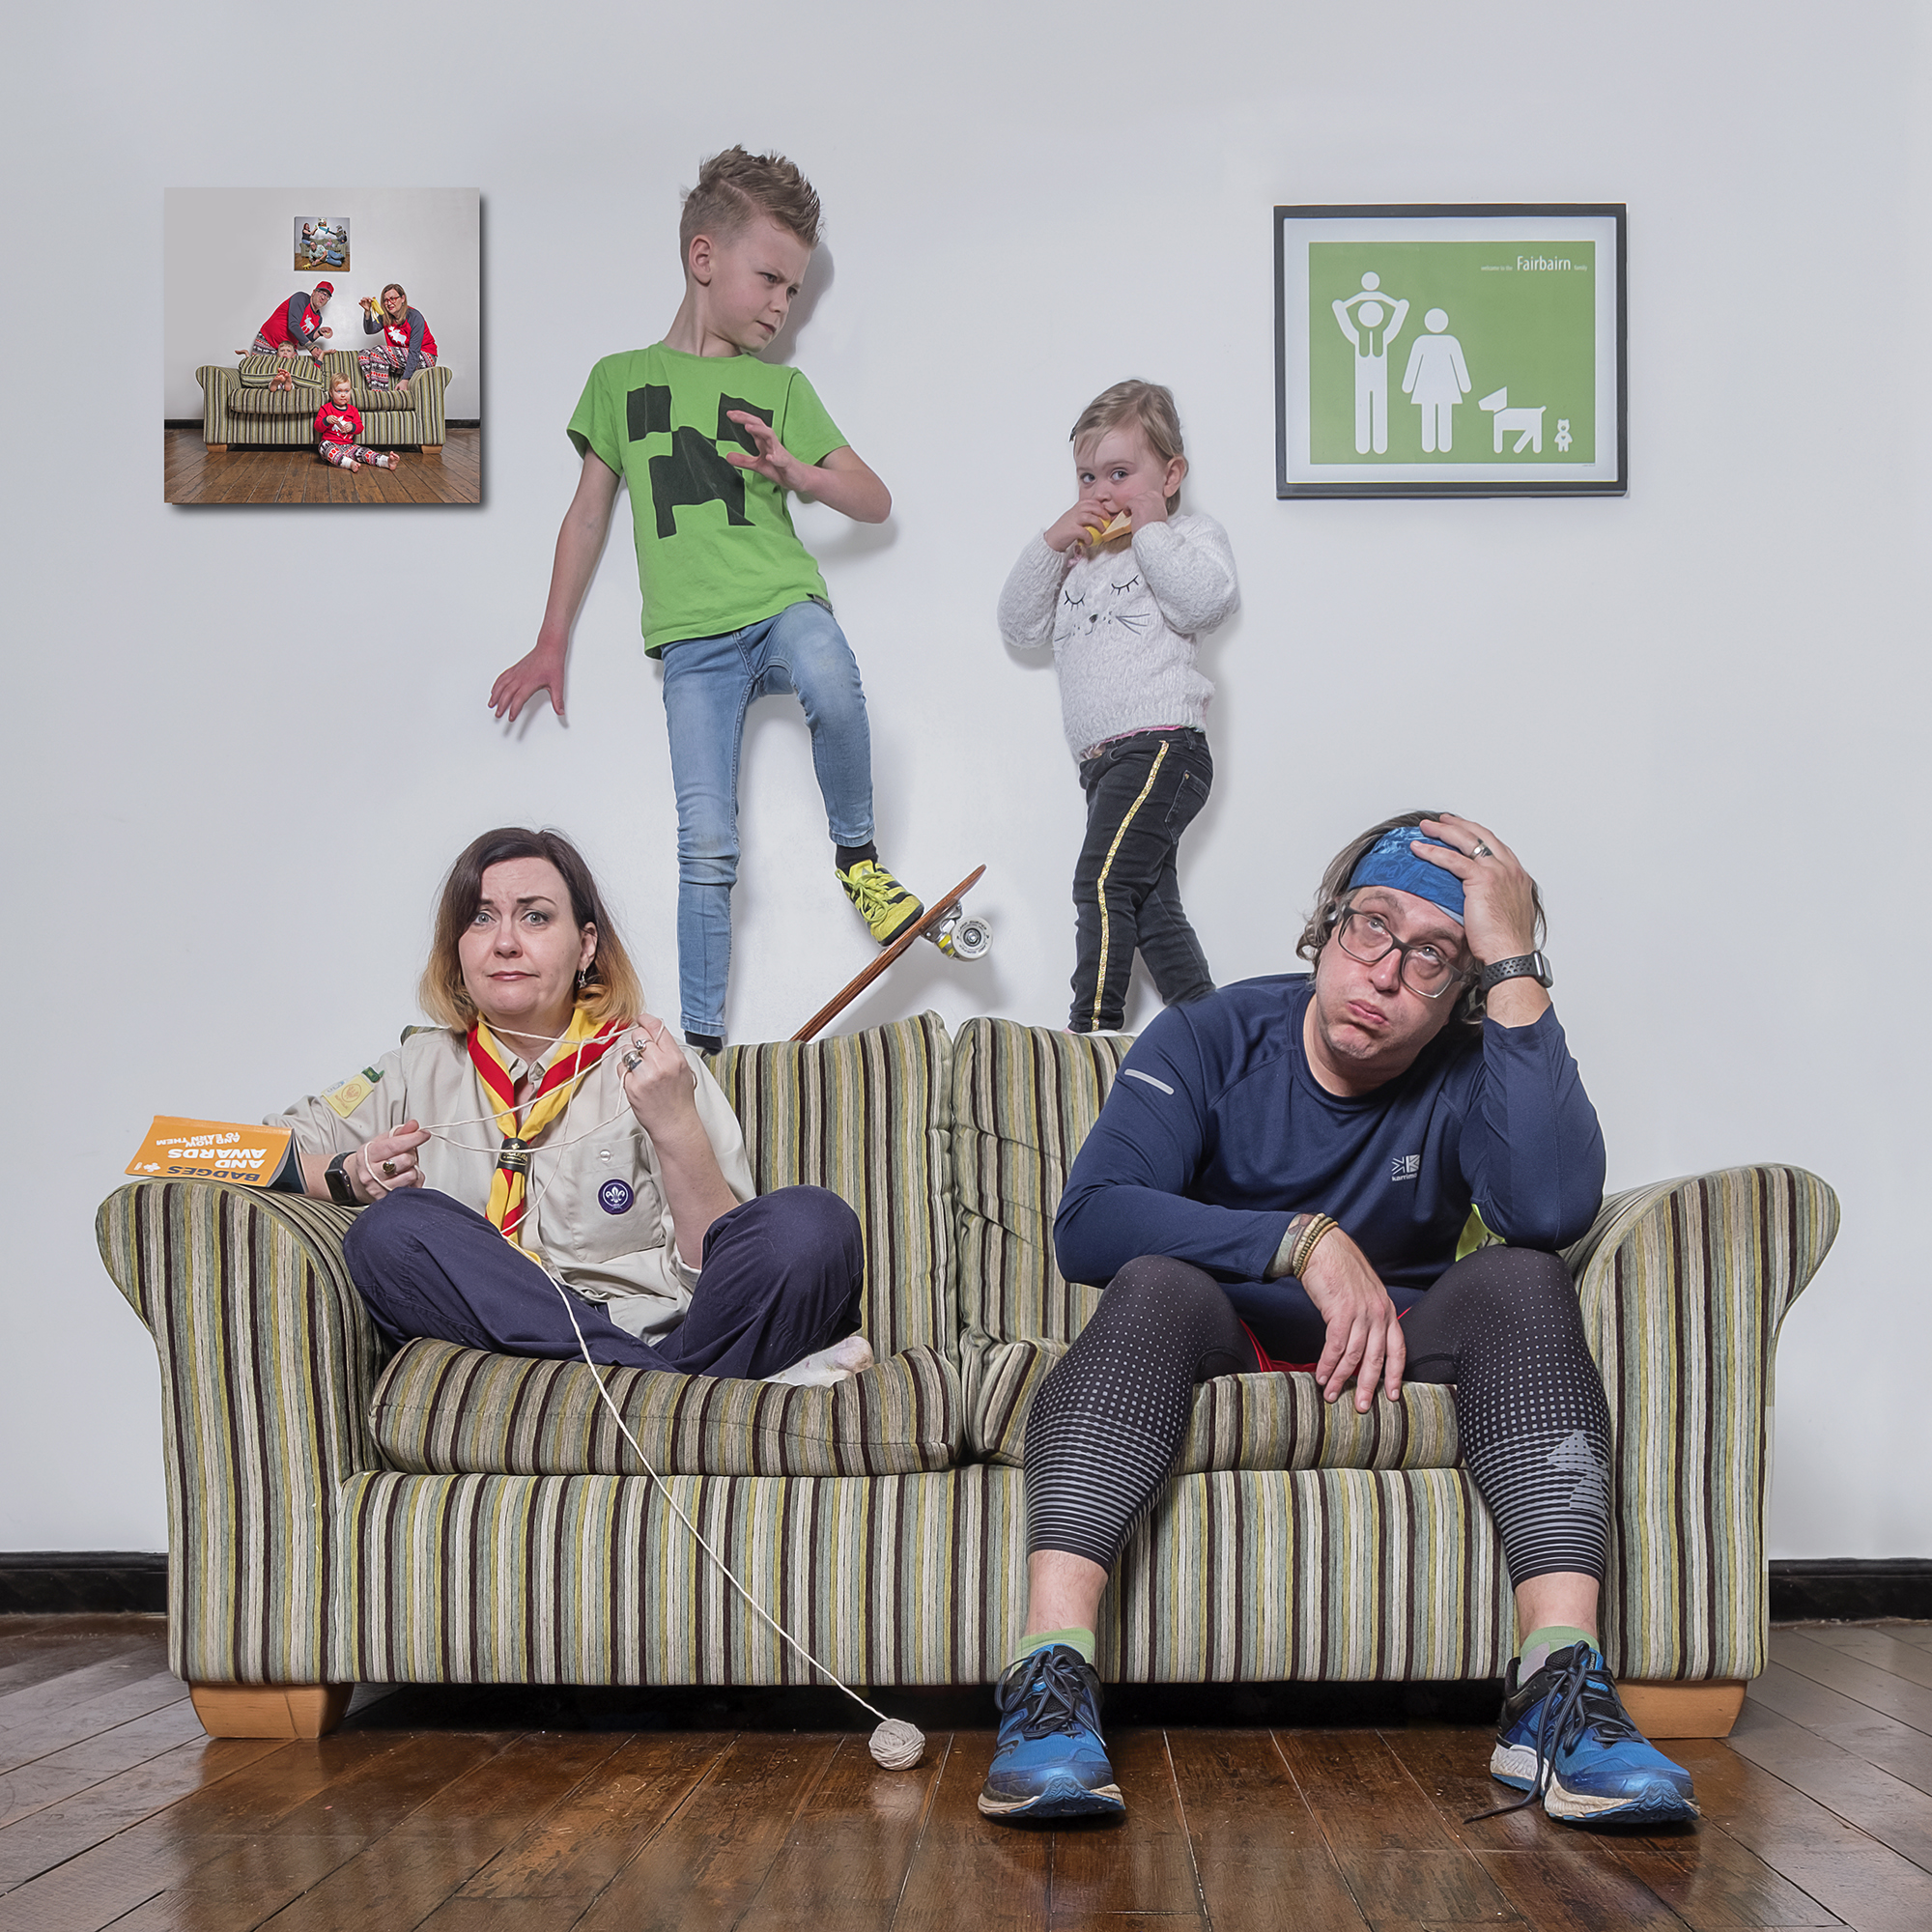 Unique_Family_Portrait_Fairbairn_George_2018.jpg